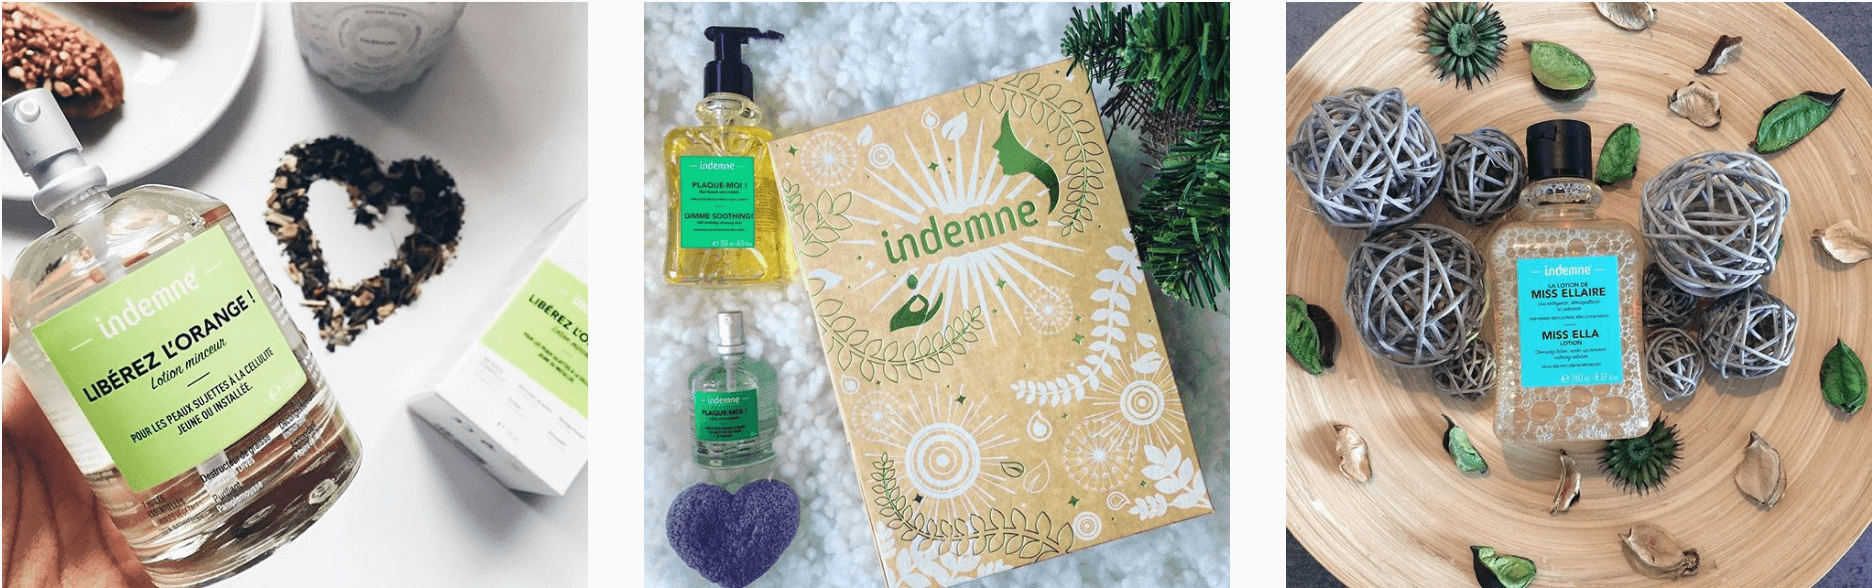 miss-elaire-deboutonnez-moi-liberez-lorange-eau-de-genie-indemne-france-lotion-tonique-instagram-facebook-makeupbyazadig